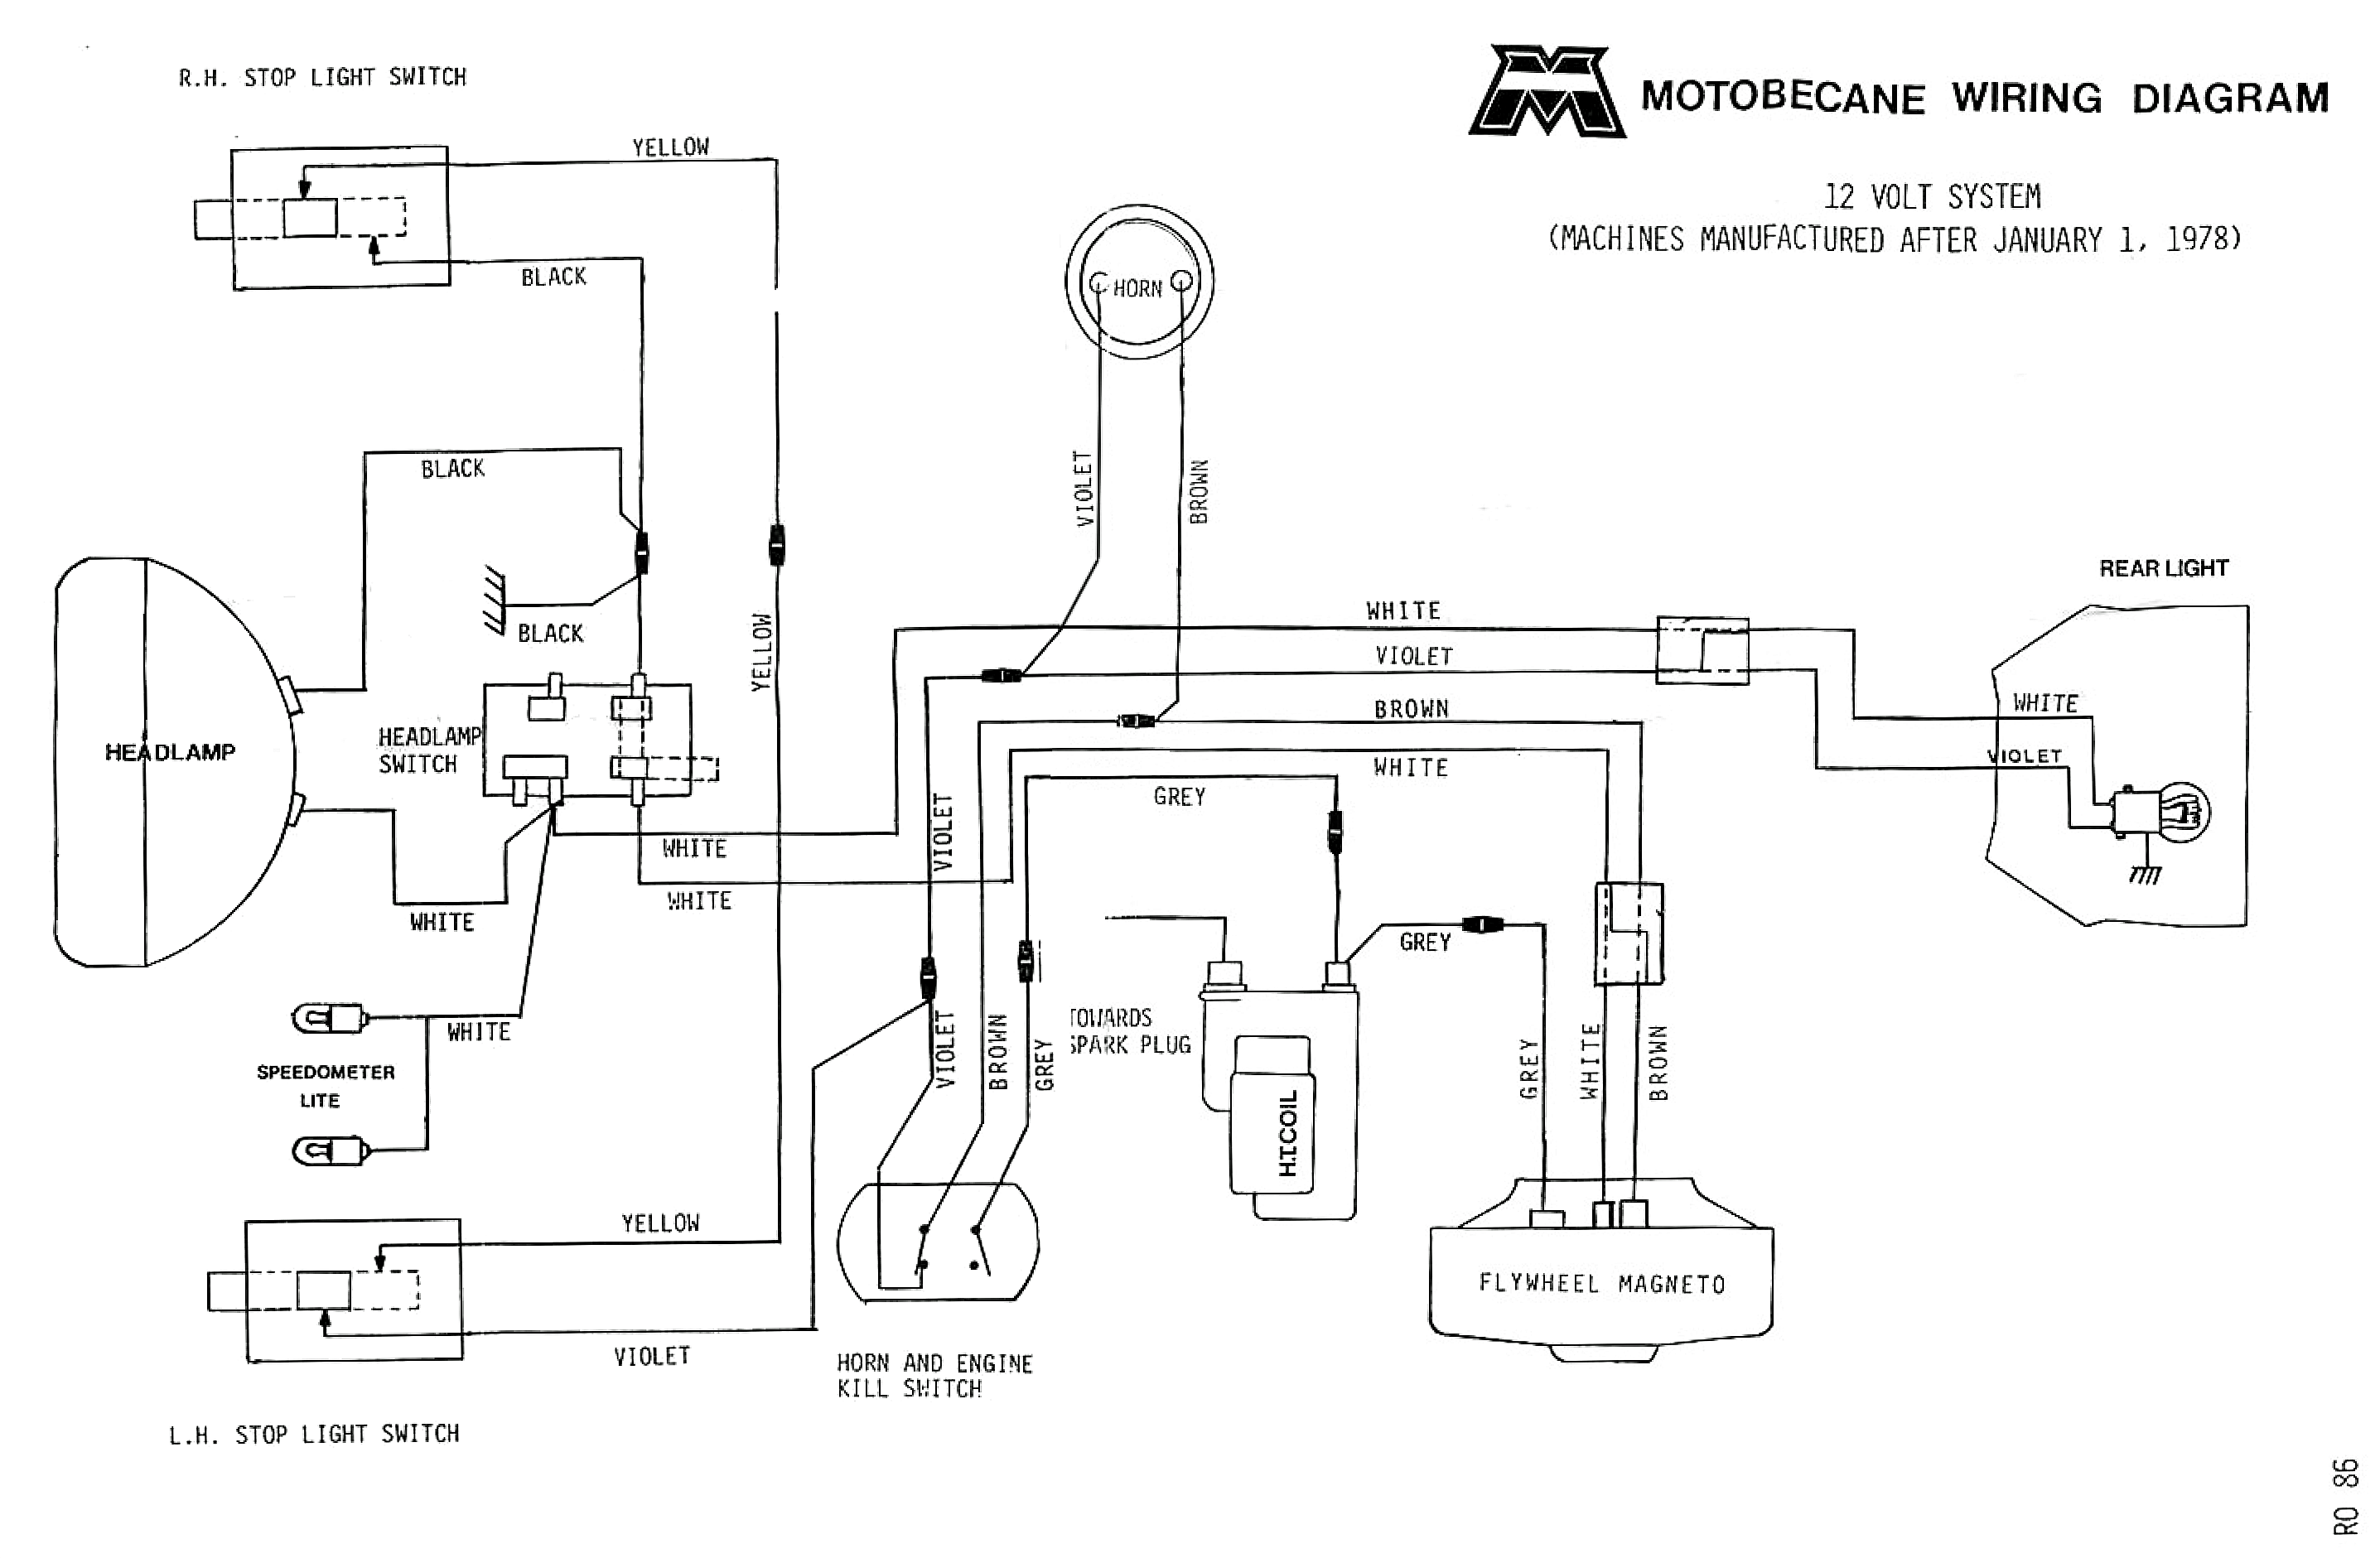 Motobecane12v_wiring_diagram motobecane wiring diagrams moped wiki 12 volt wiring diagram at gsmportal.co